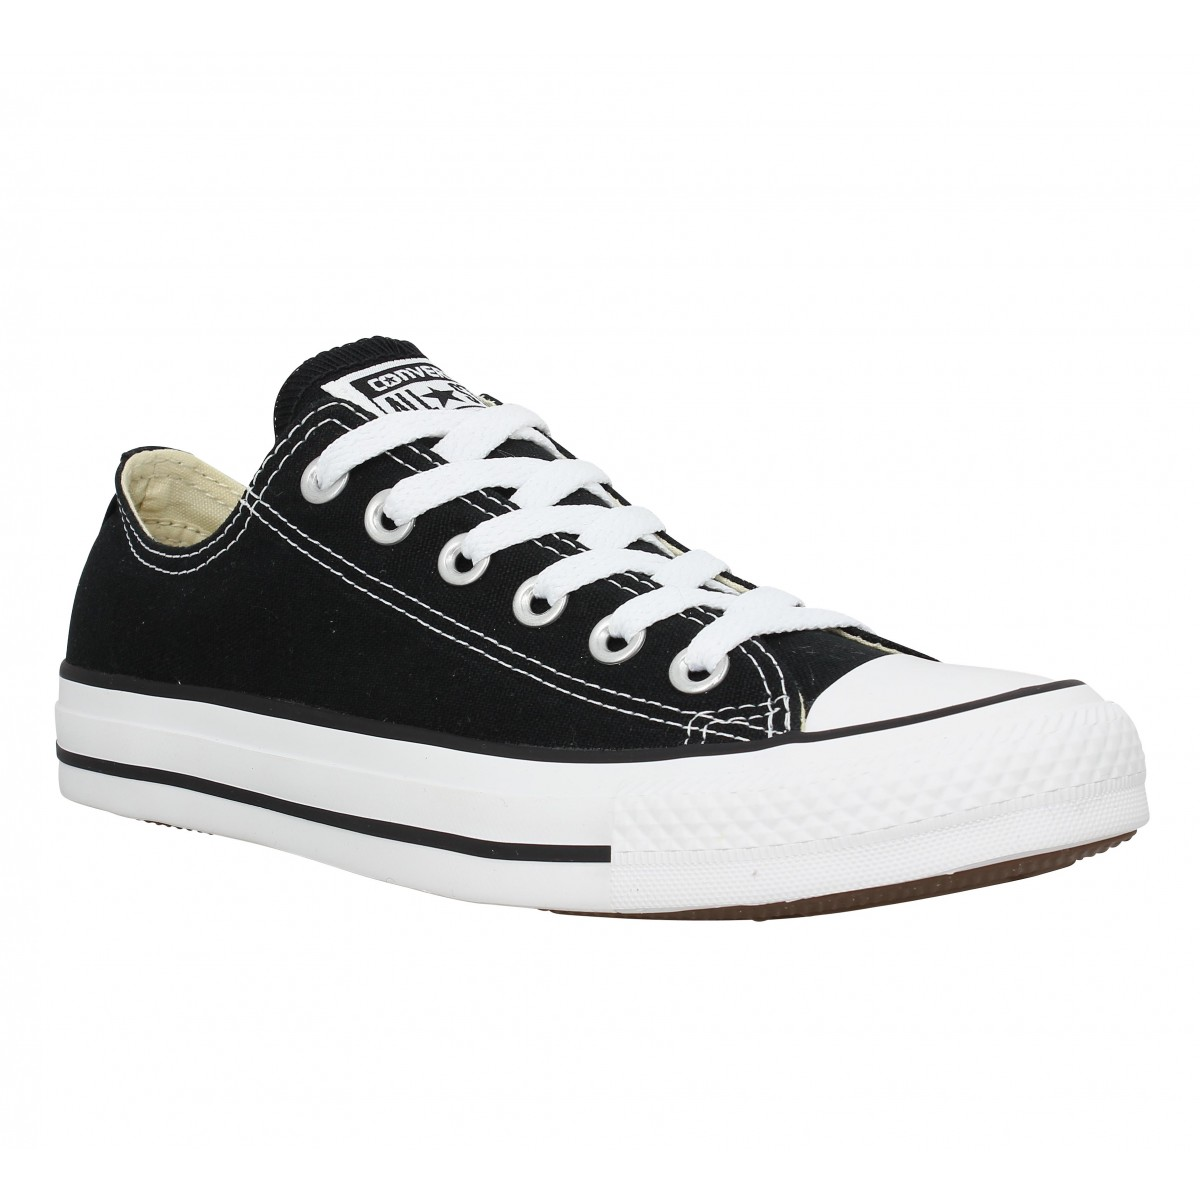 Baskets CONVERSE Chuck Taylor All Star toile Femme Noir